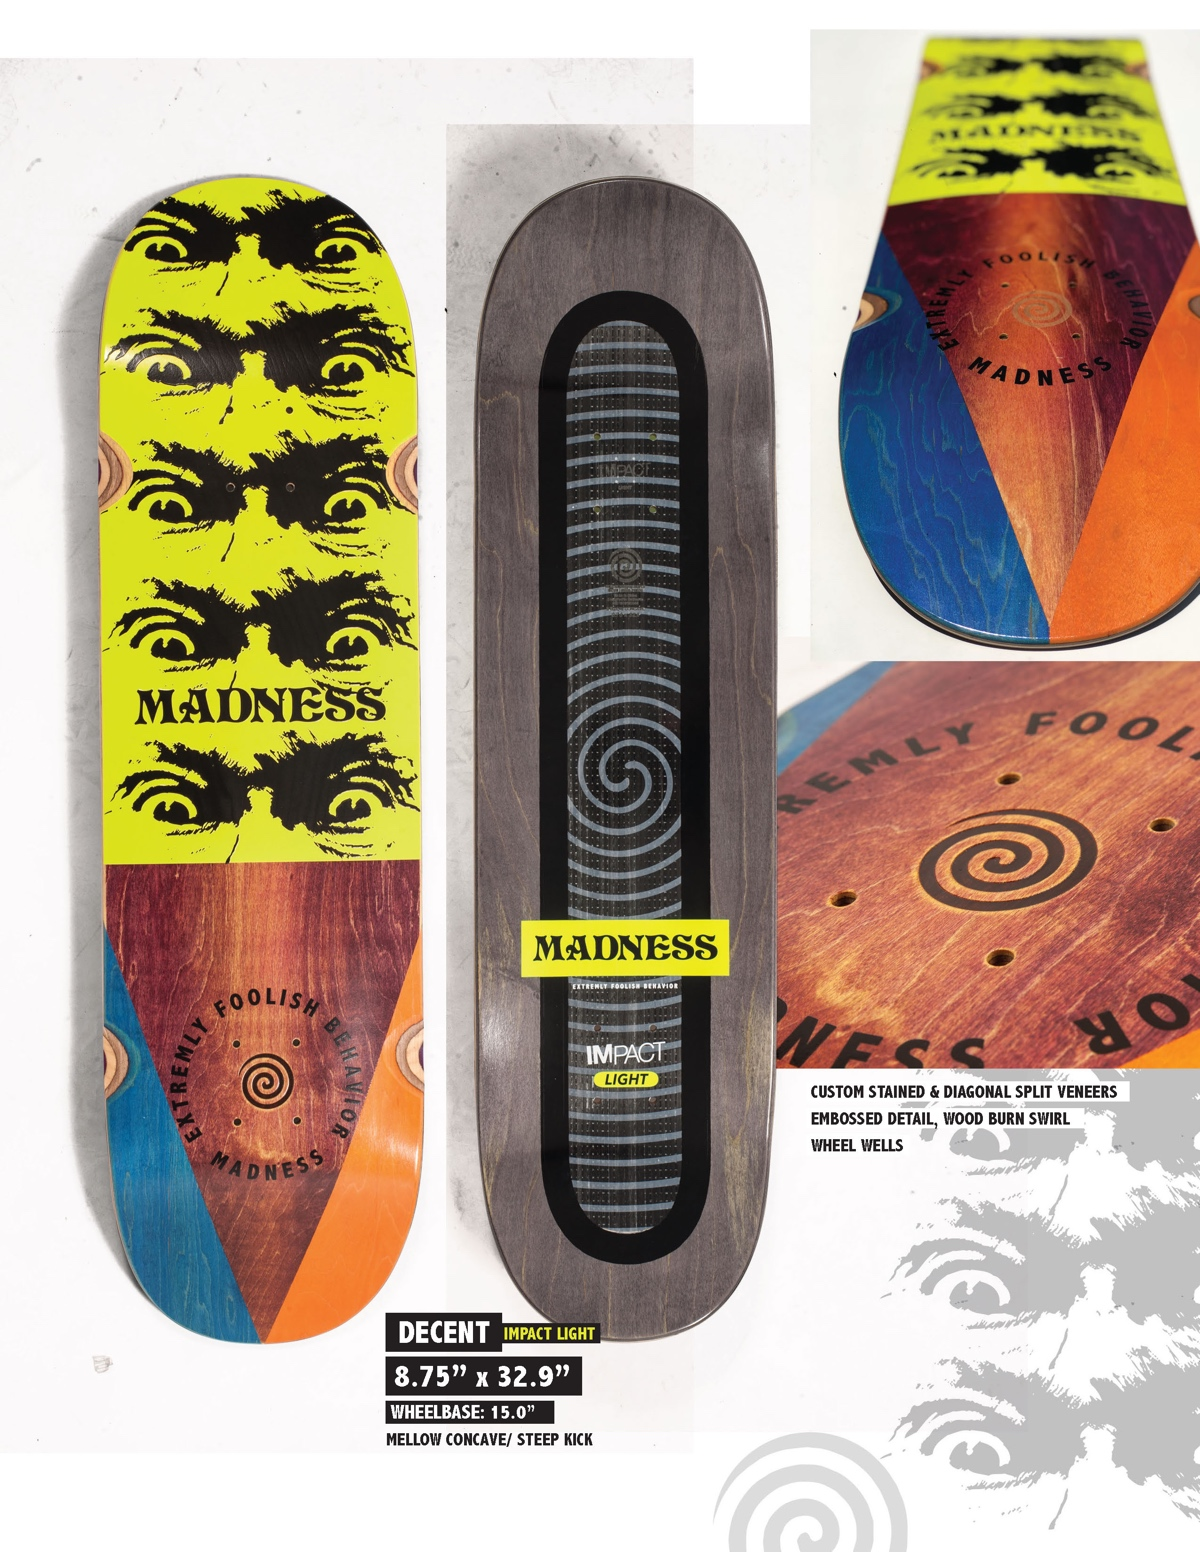 Copy of MADNESS Decent 8.75 Impact Light Skateboard Deck